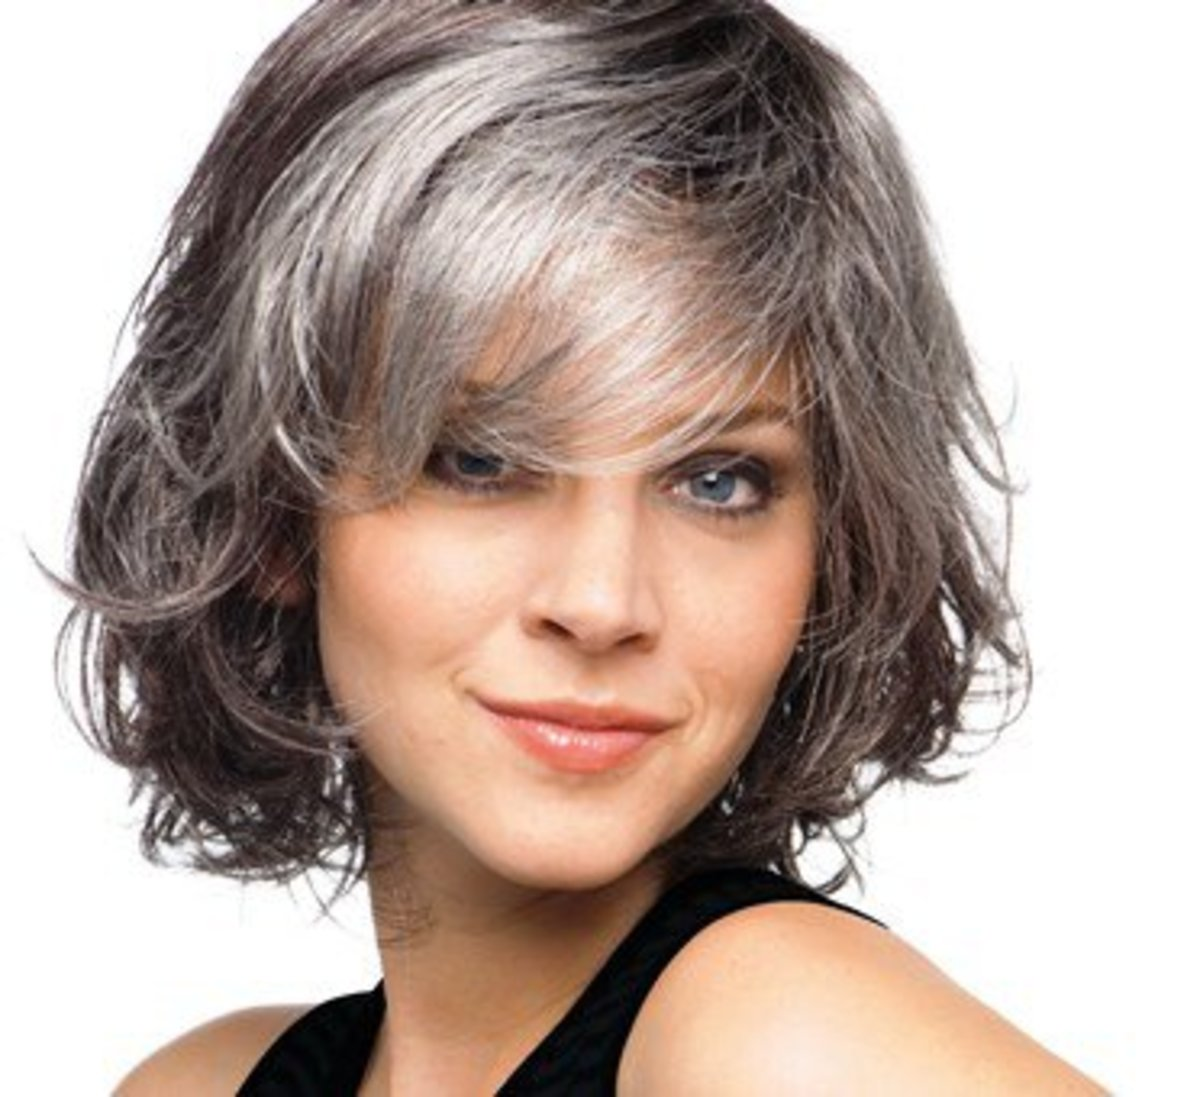 Silver Fox Hair Styles For Medium Texture Wavy Hair Bellatory